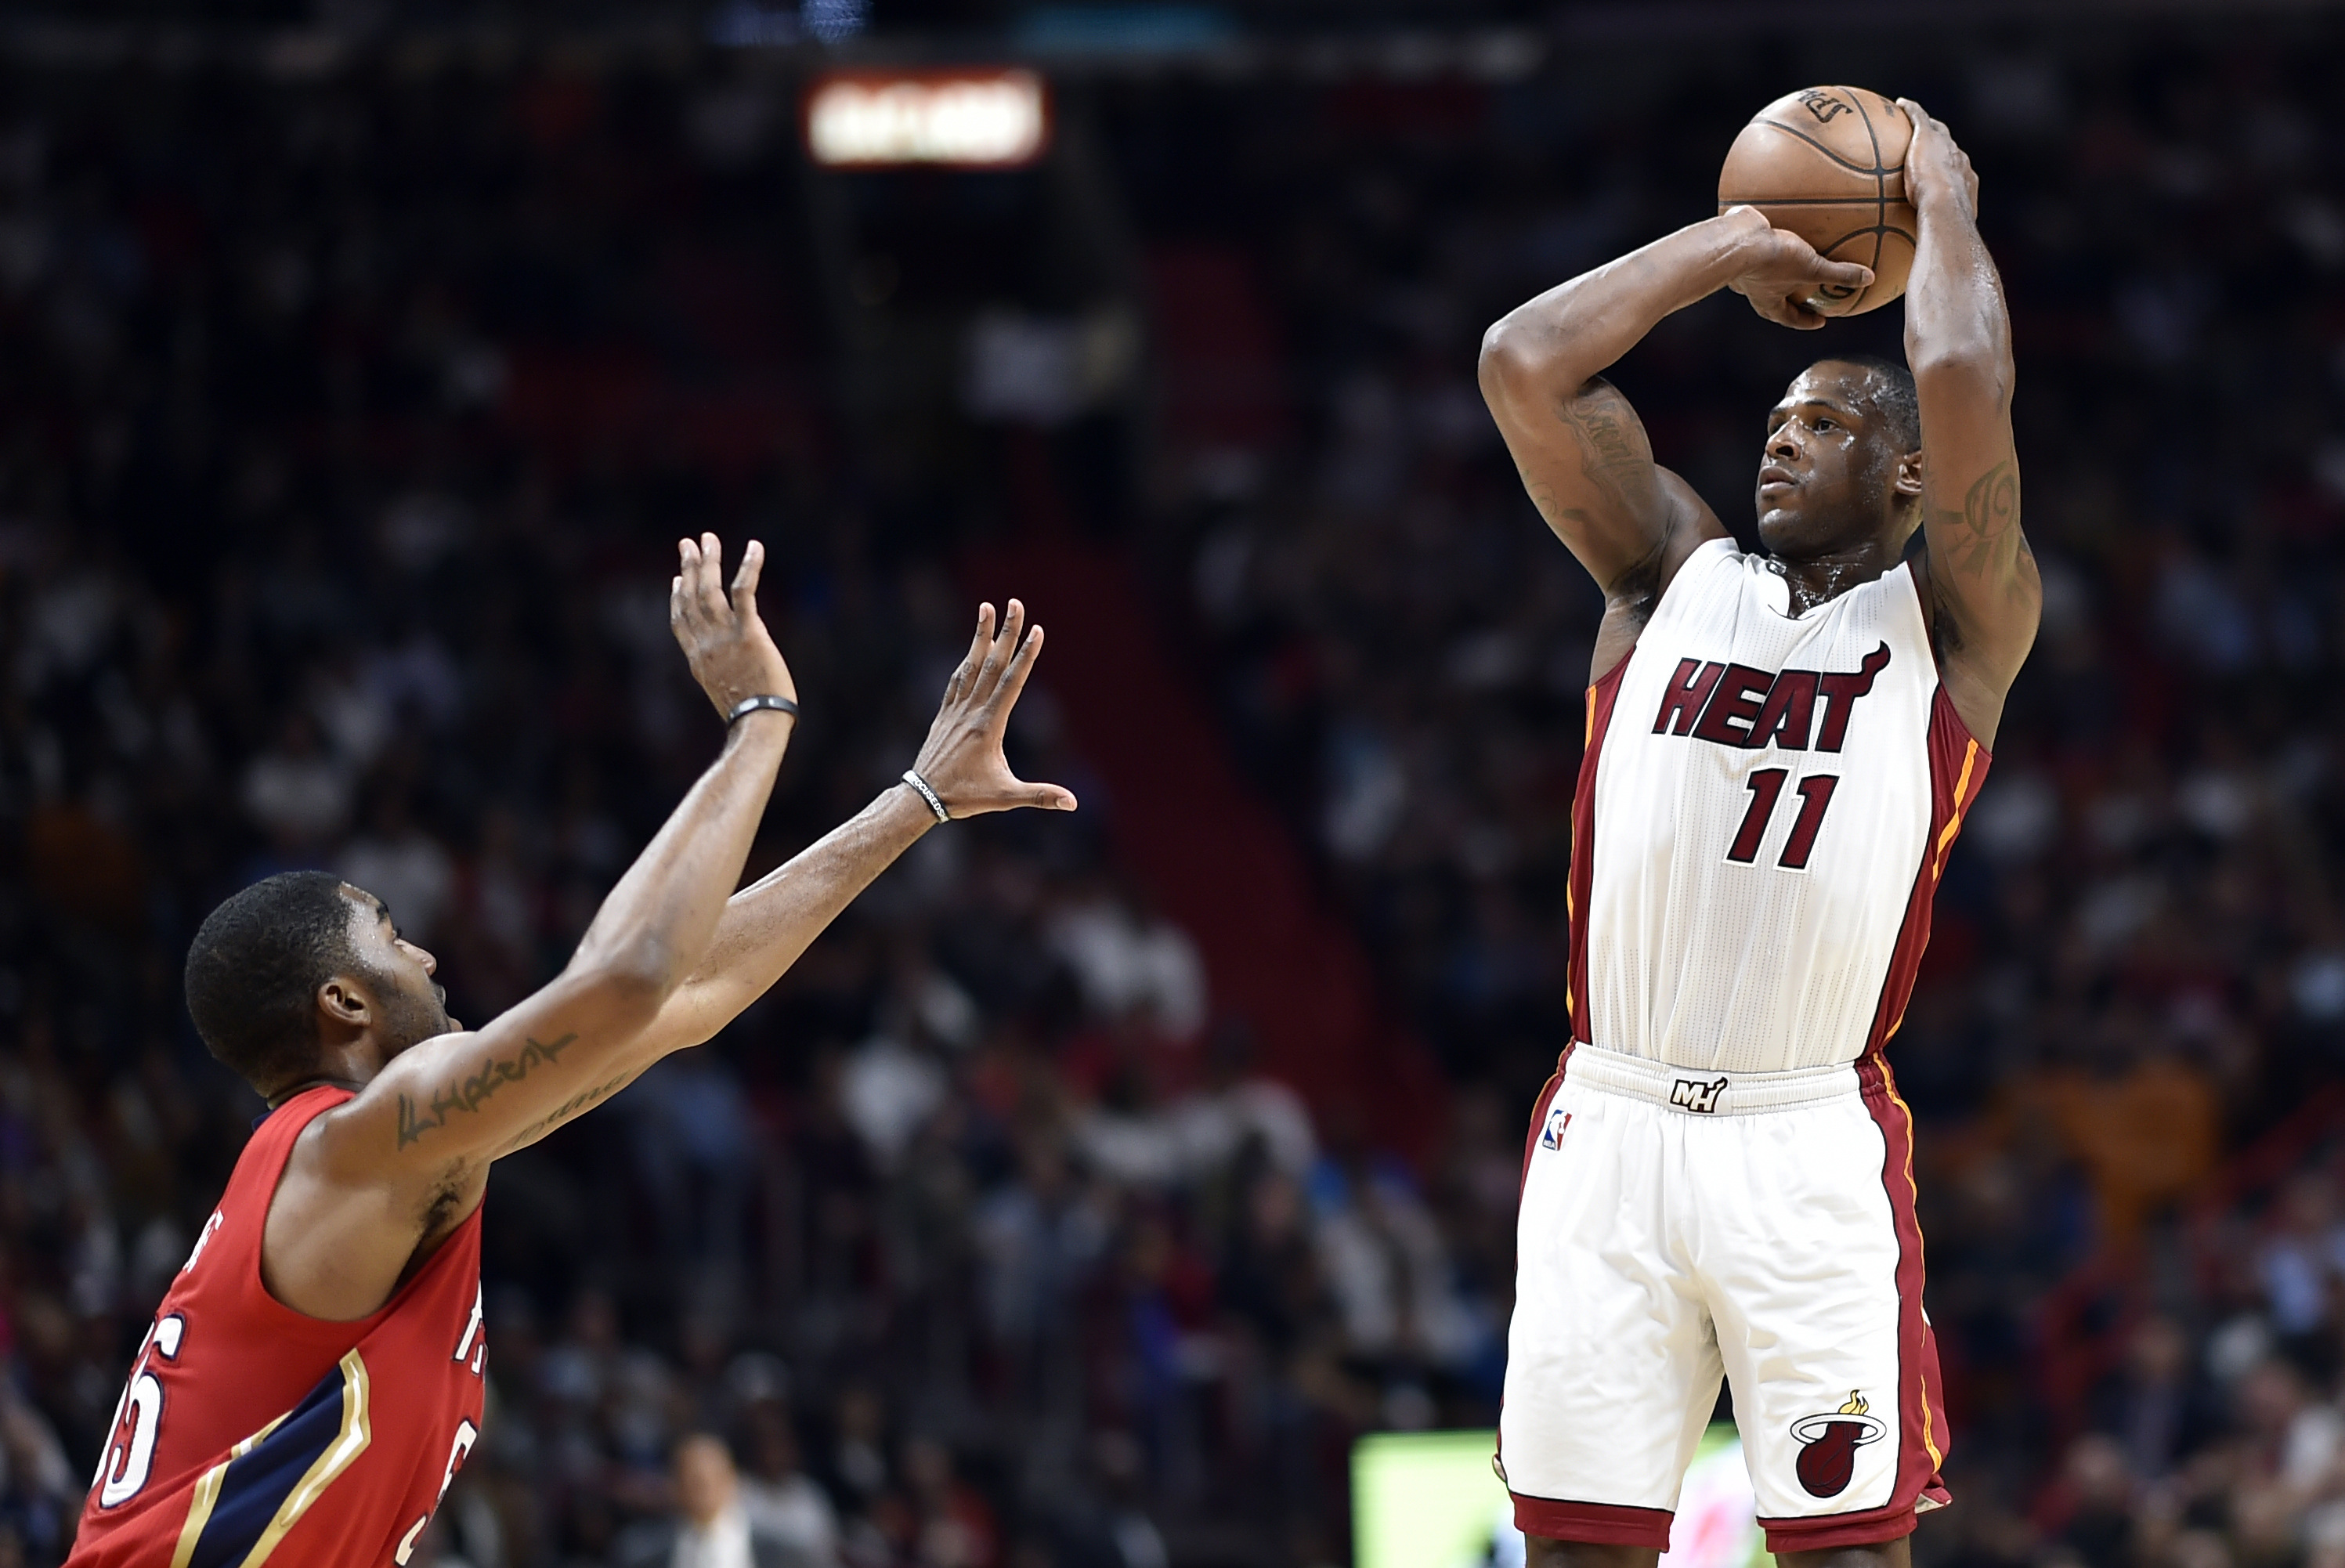 Despite late injury, Whiteside leads Heat past Suns